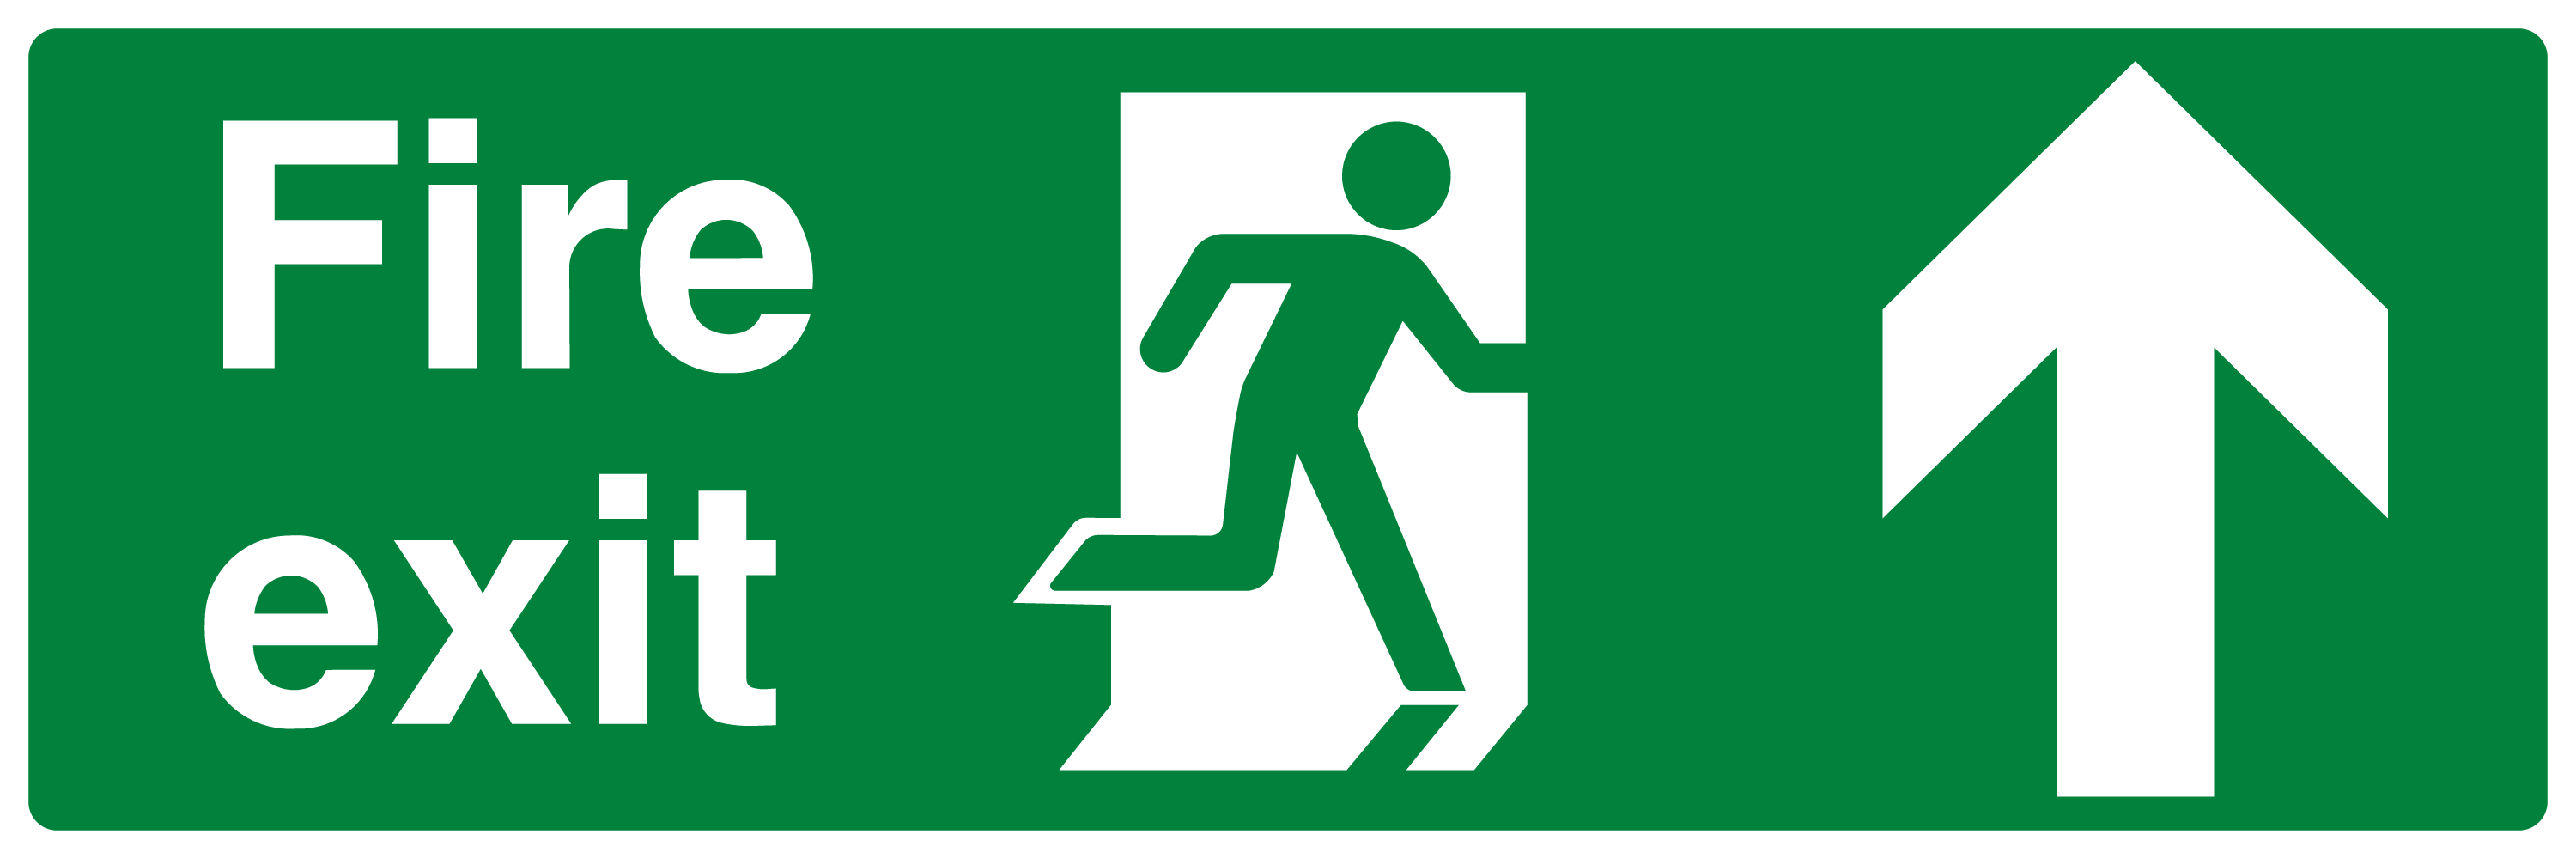 Fire Exit Running Man Up